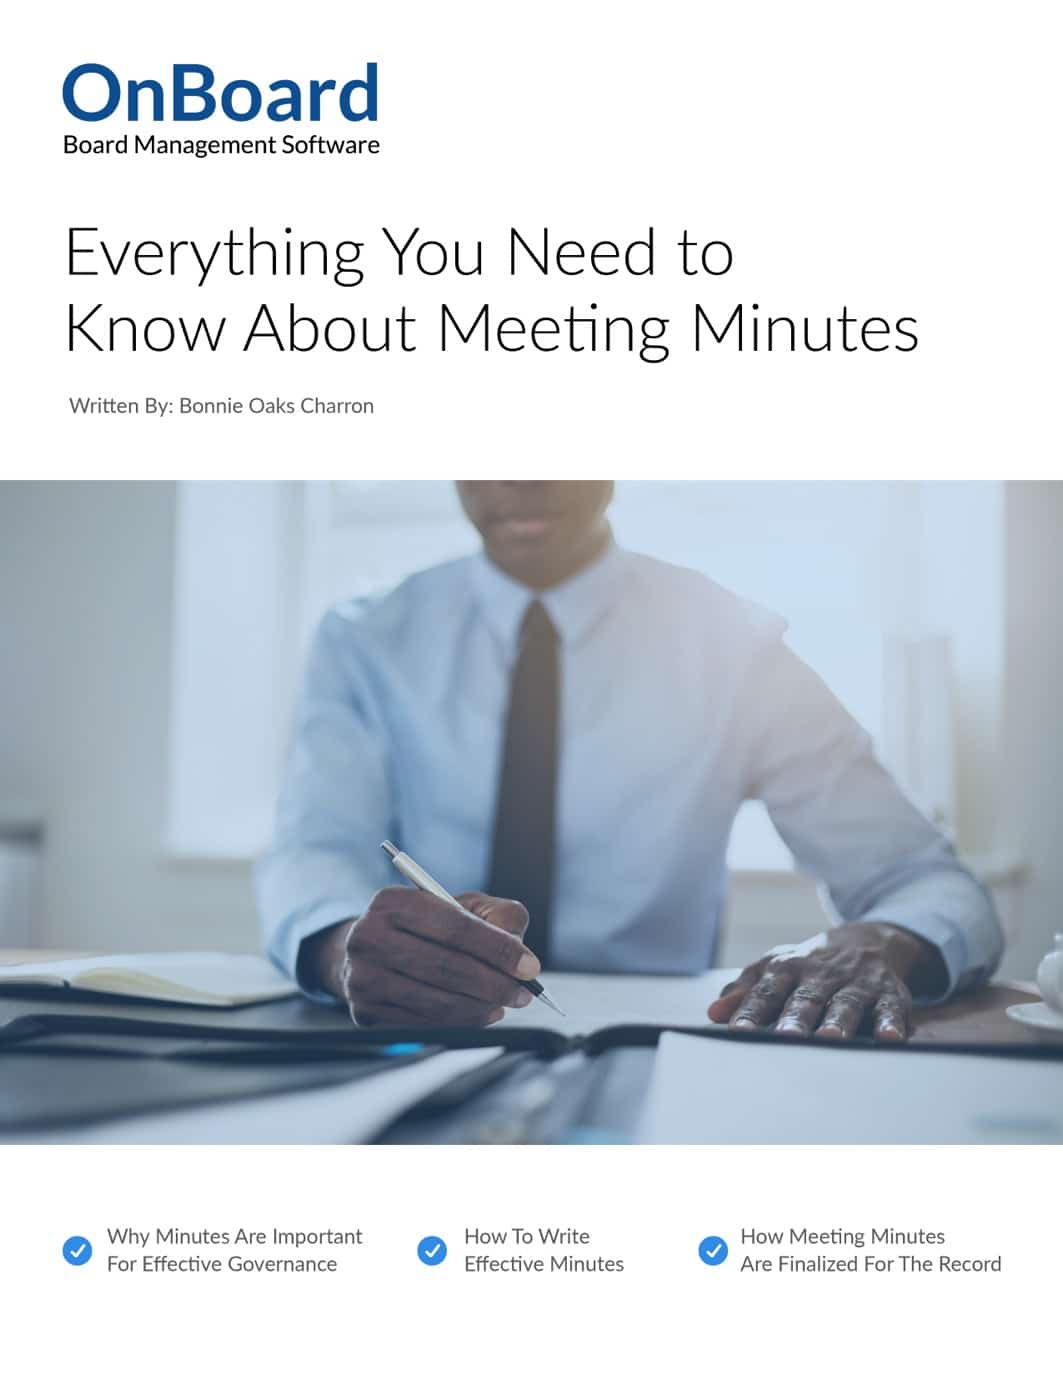 Everything about Meeting Minutes@1x